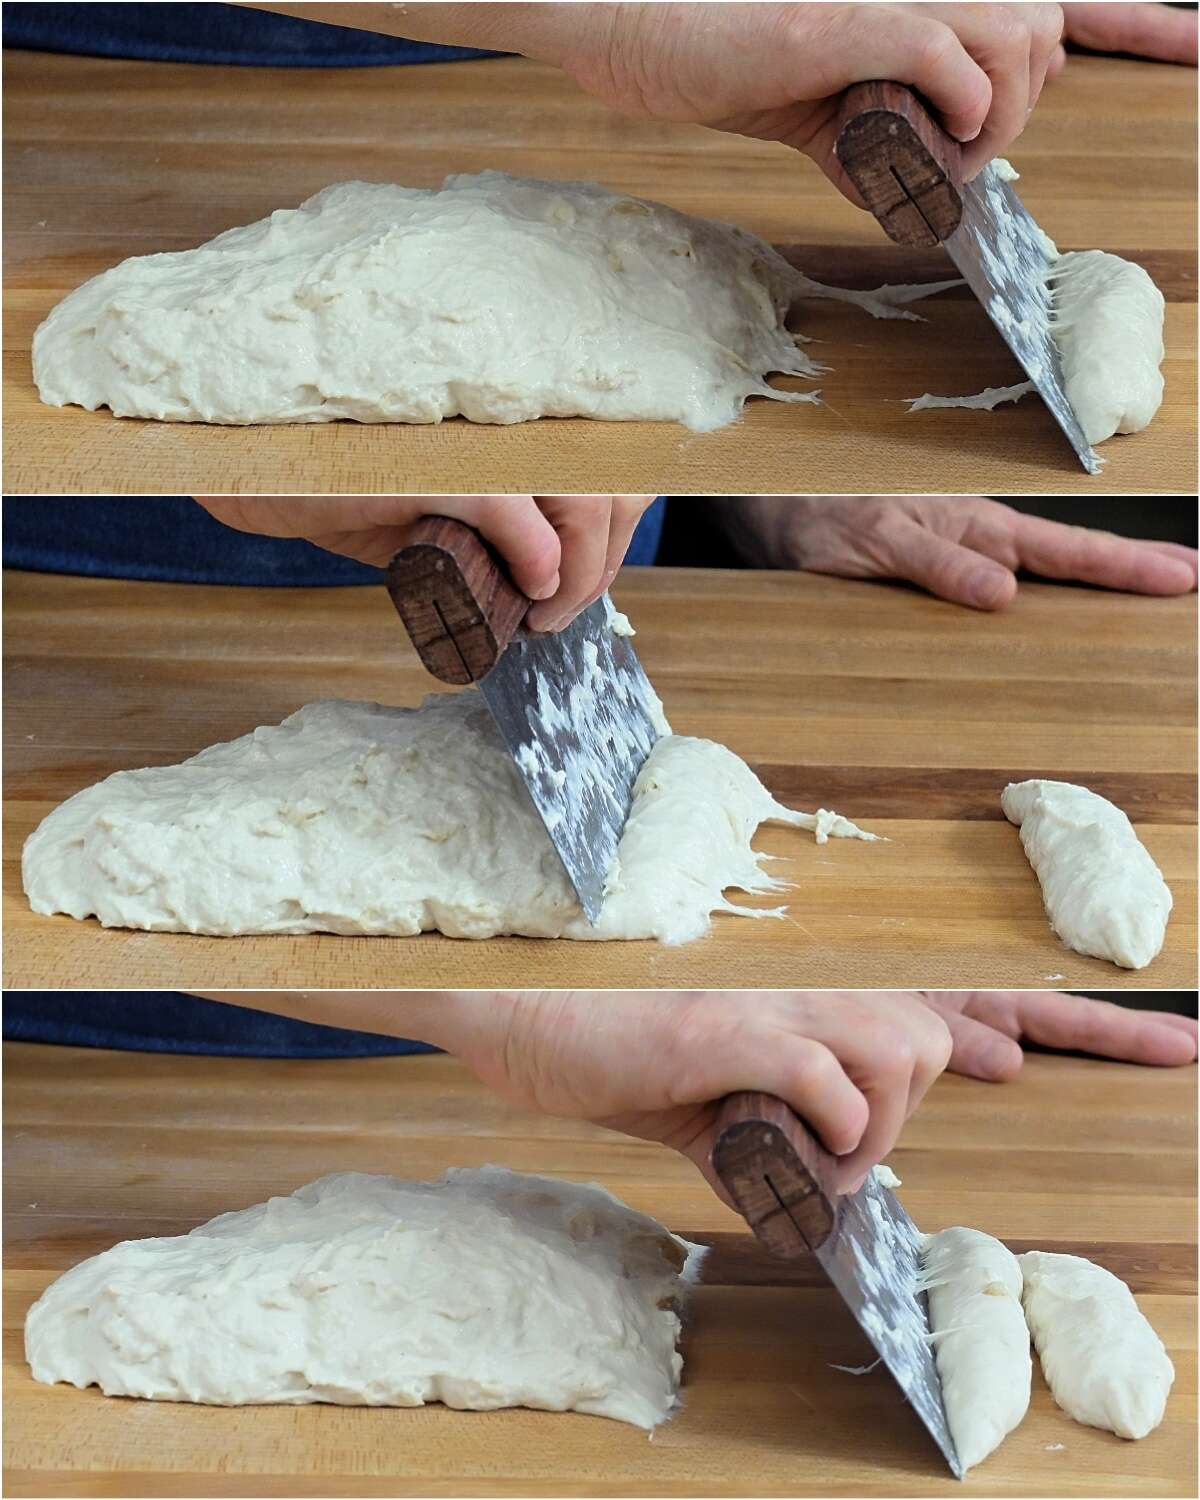 Kneading wet dough by hand via @kingarthurflour